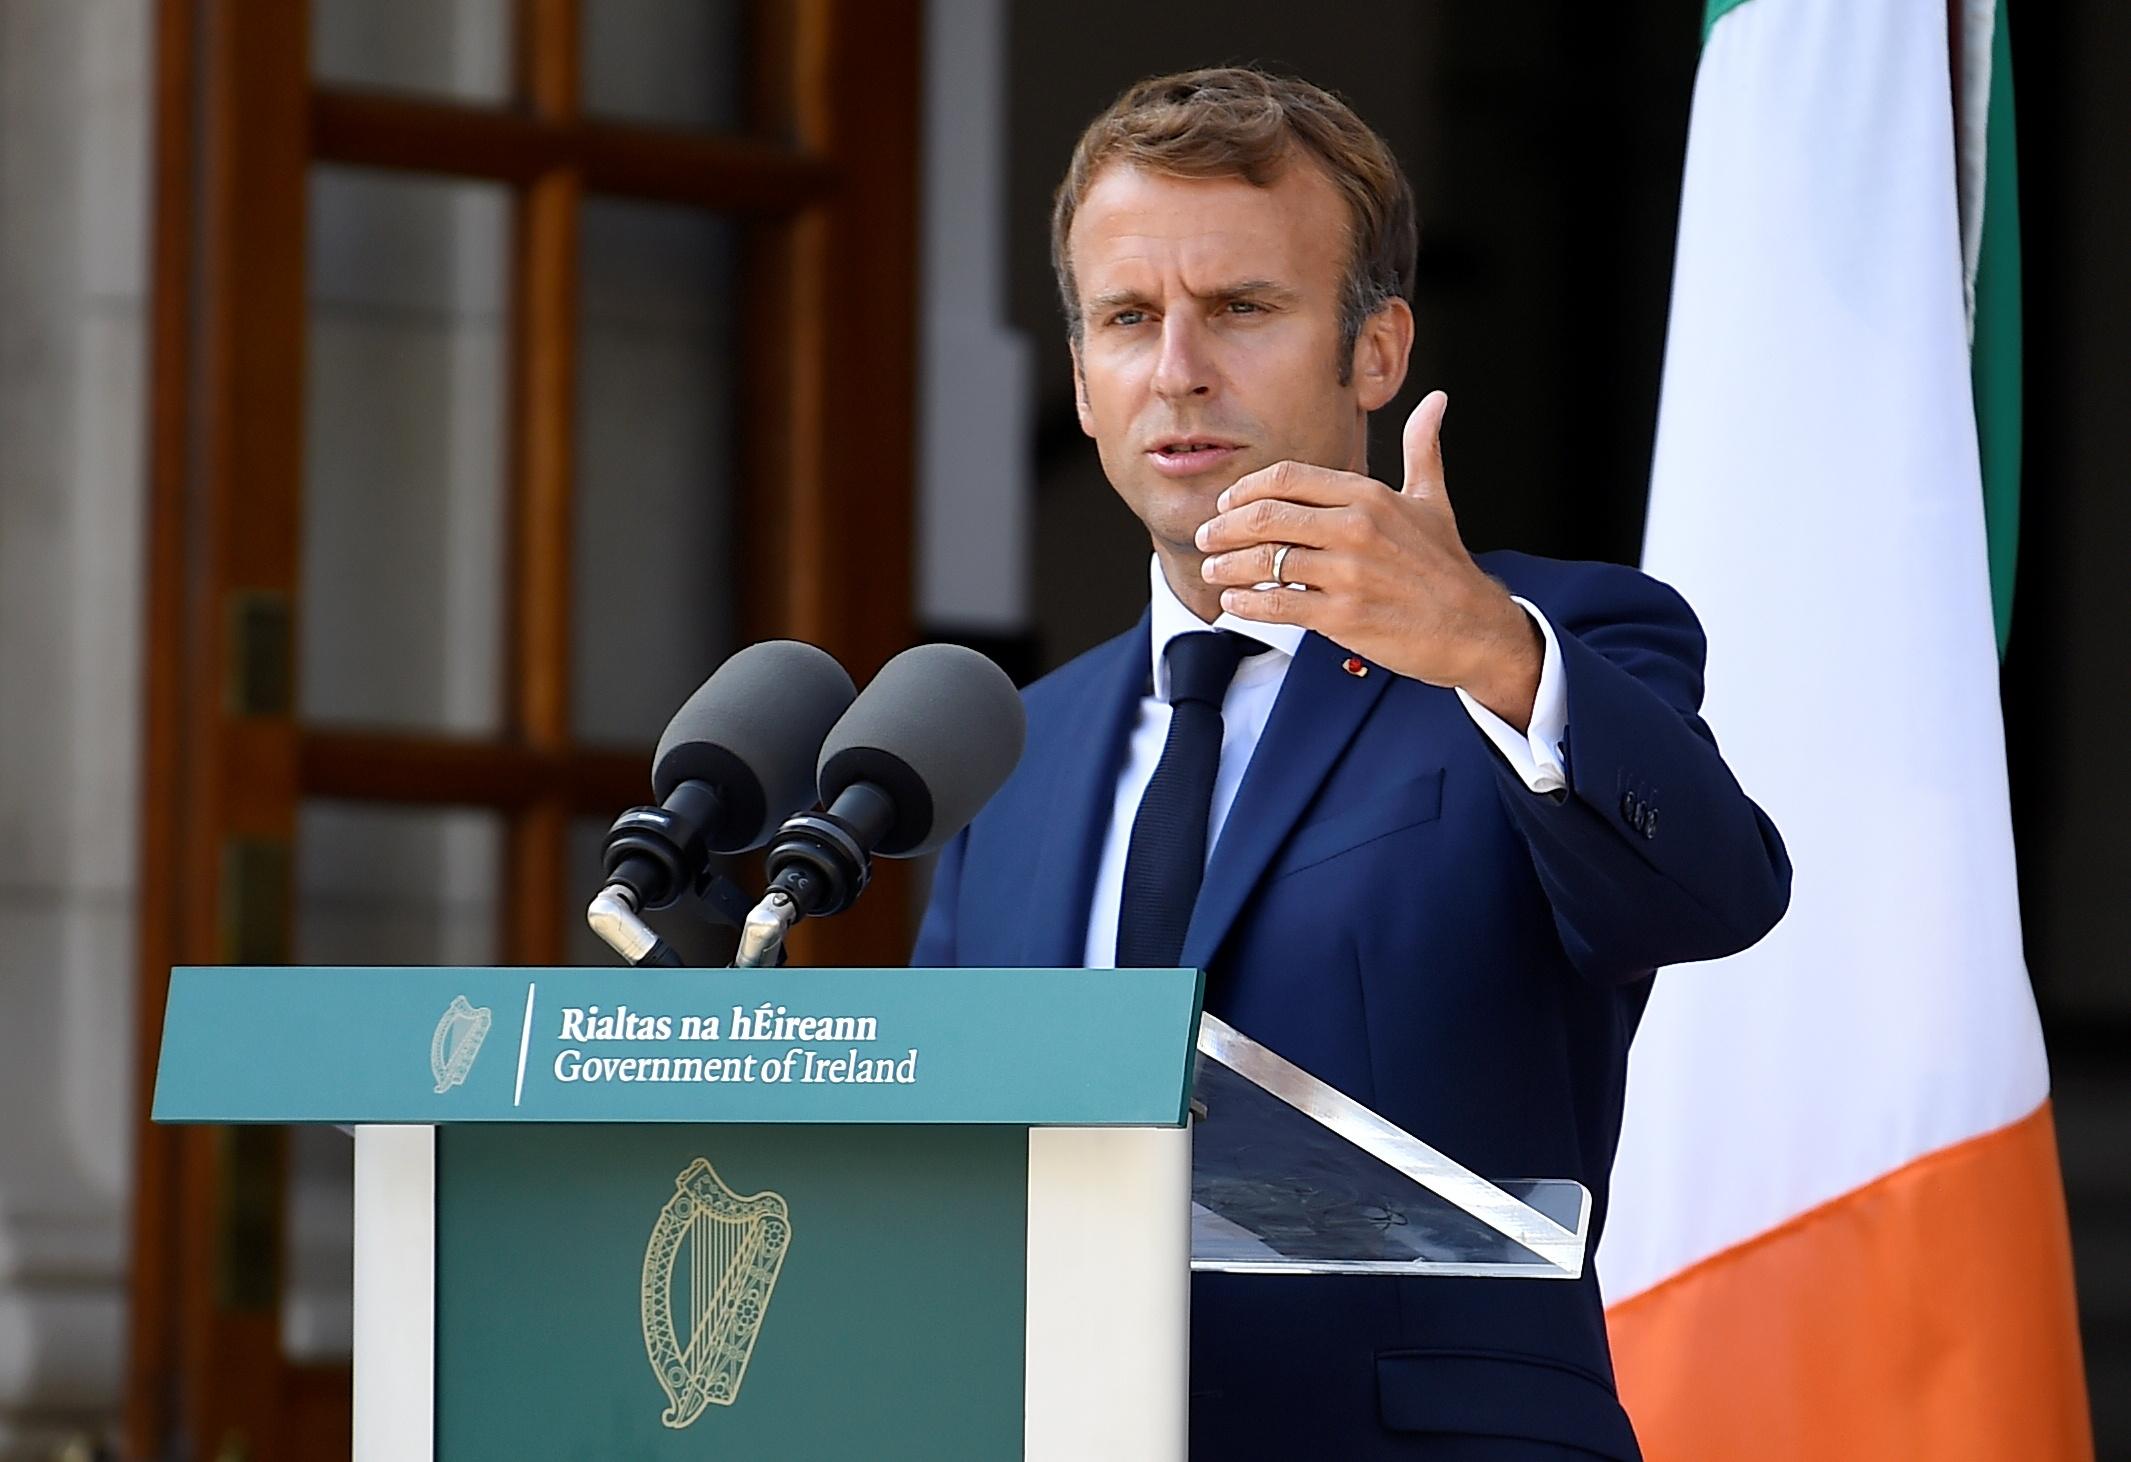 French President Emmanuel Macron speaks during a joint news conference with Ireland's Prime Minister (Taoiseach) Micheal Martin in Dublin, Ireland, August 26, 2021. REUTERS/Clodagh Kilcoyne/Pool